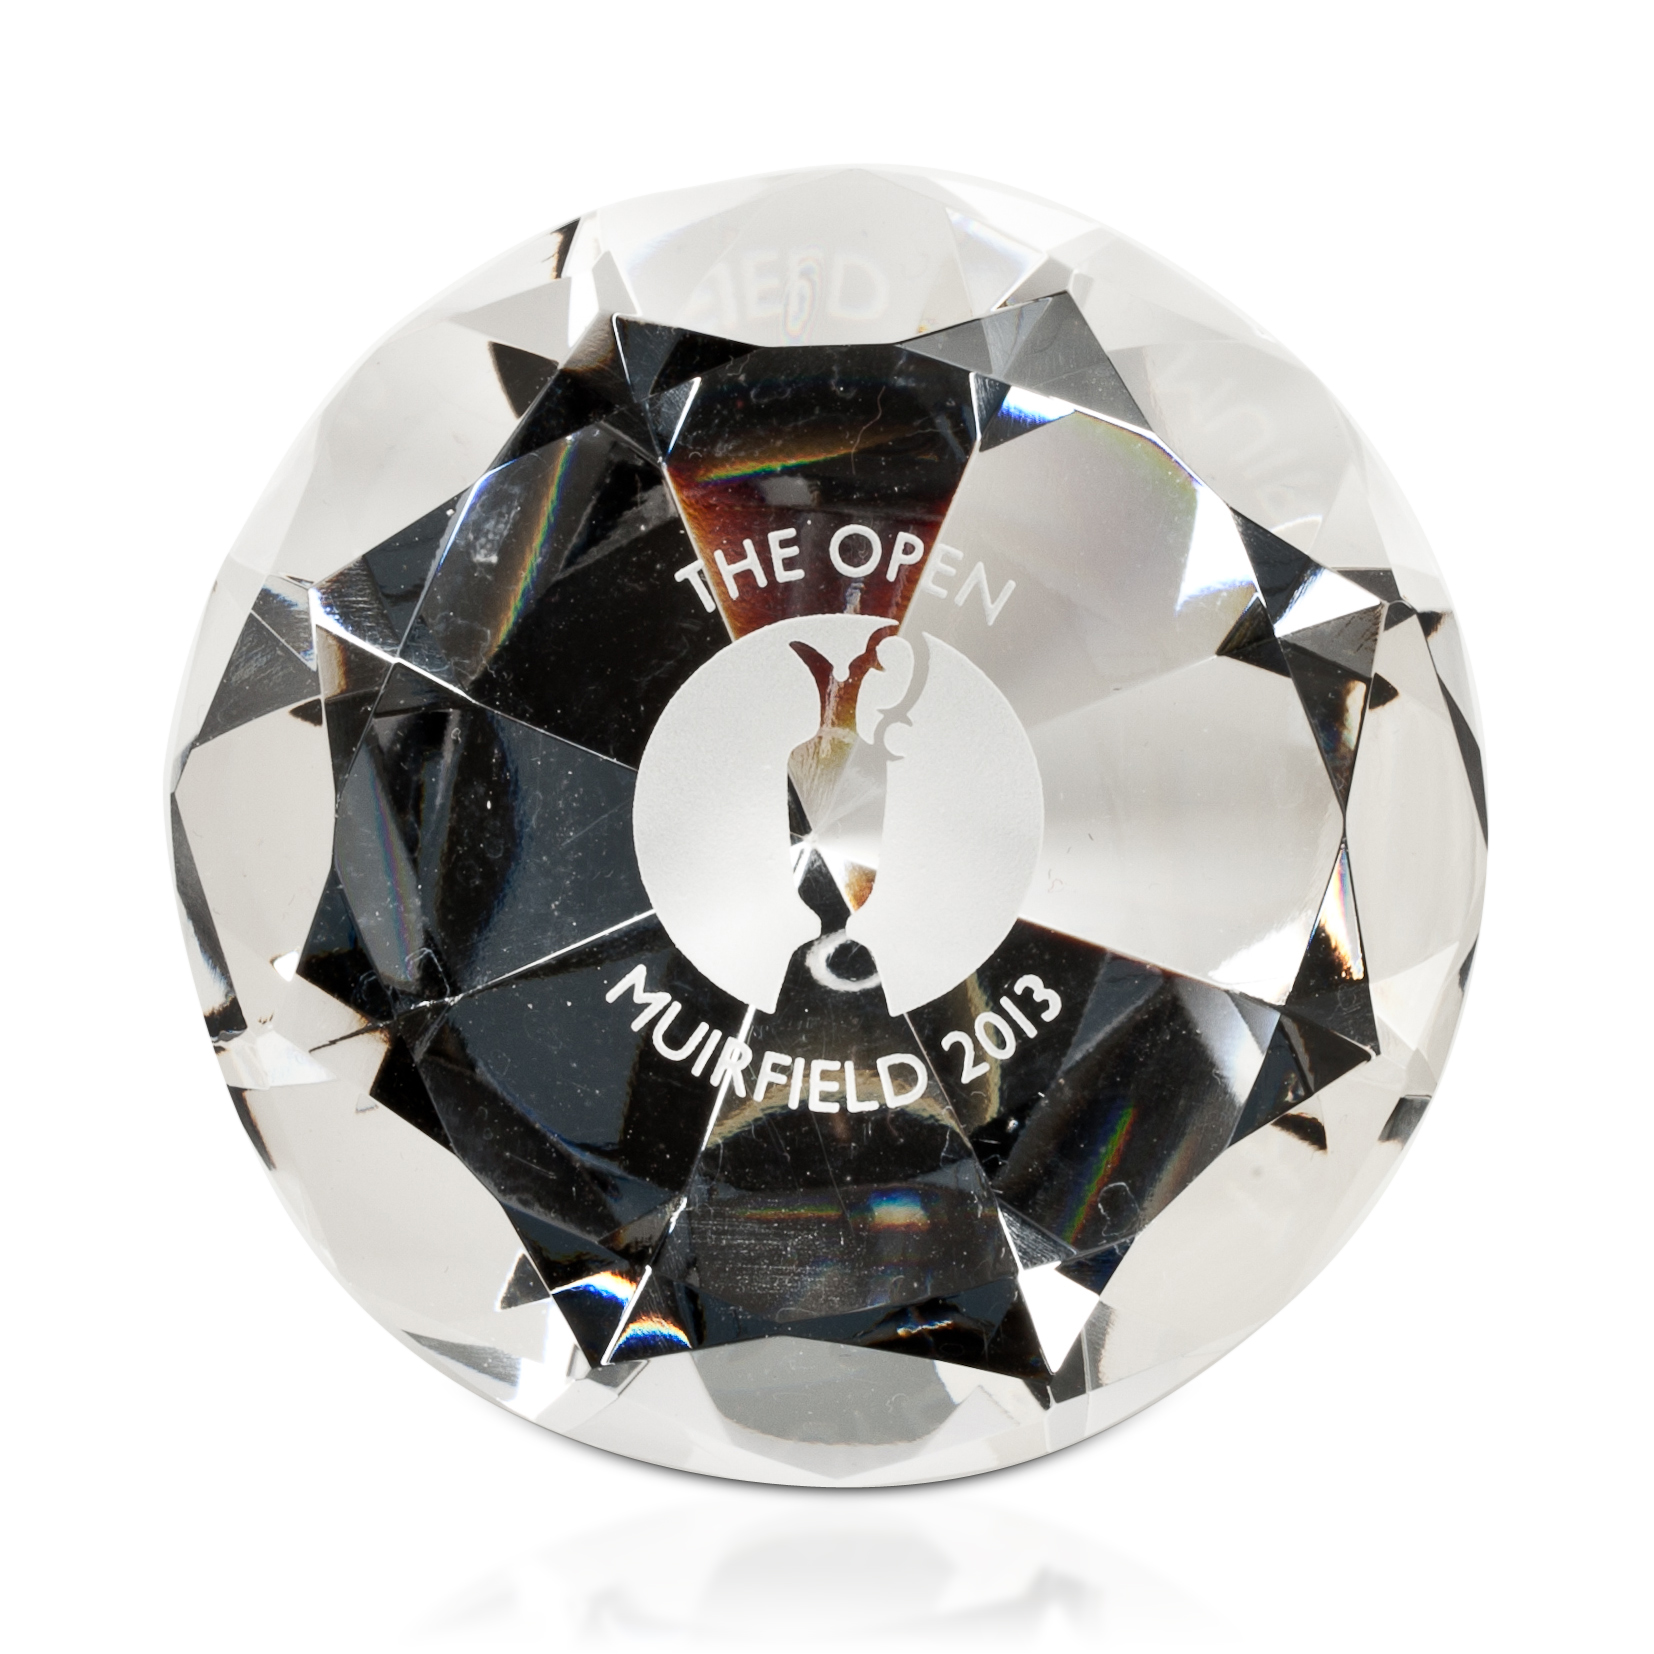 The Open Championship 2013 Muirfield Diamond Paperweight